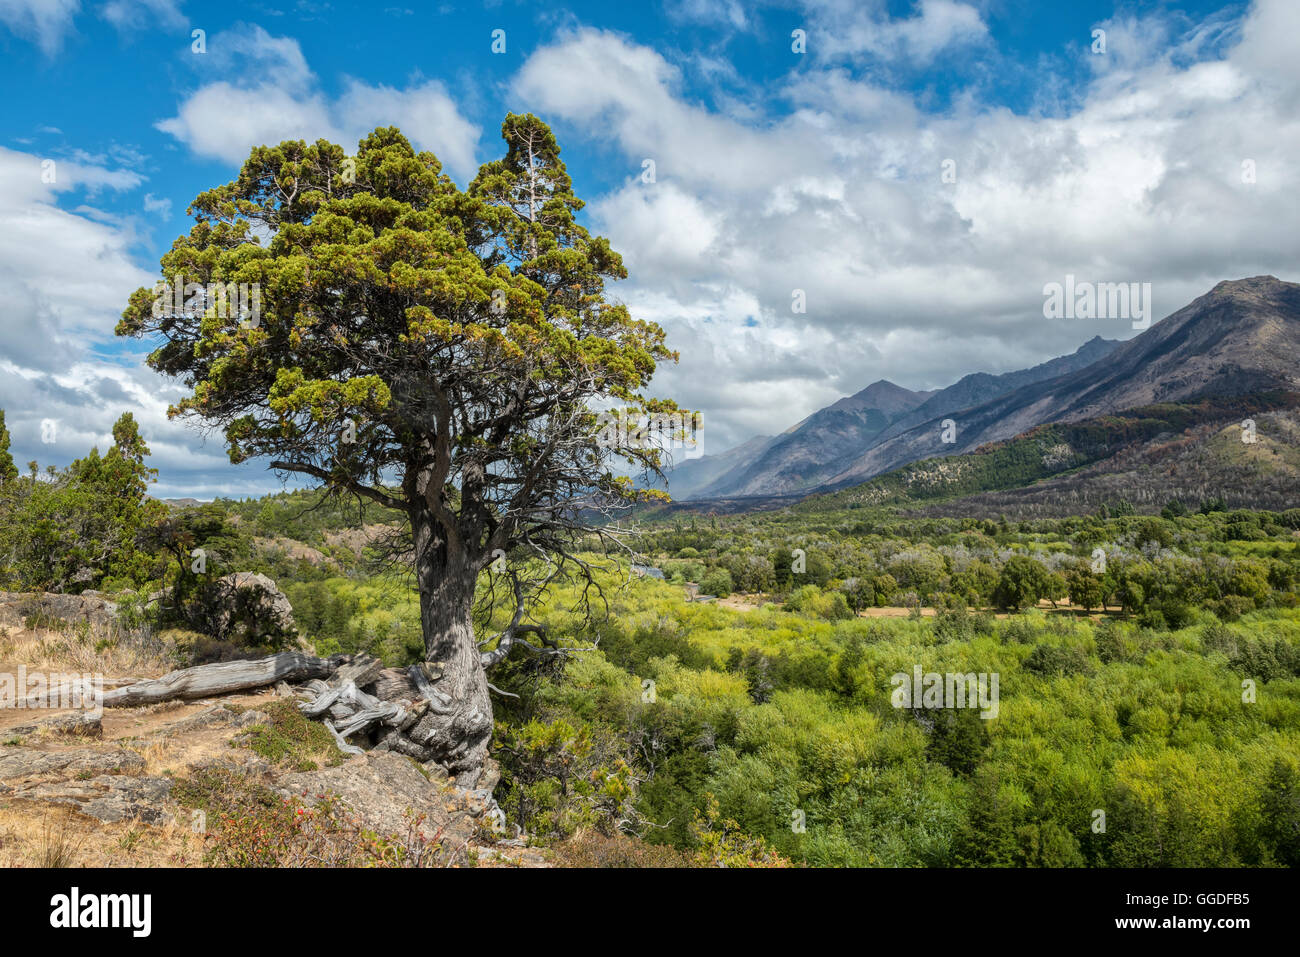 South America, Argentina, Patagonia, Chubut, Esquel, Los Alerces National Park - Stock Image